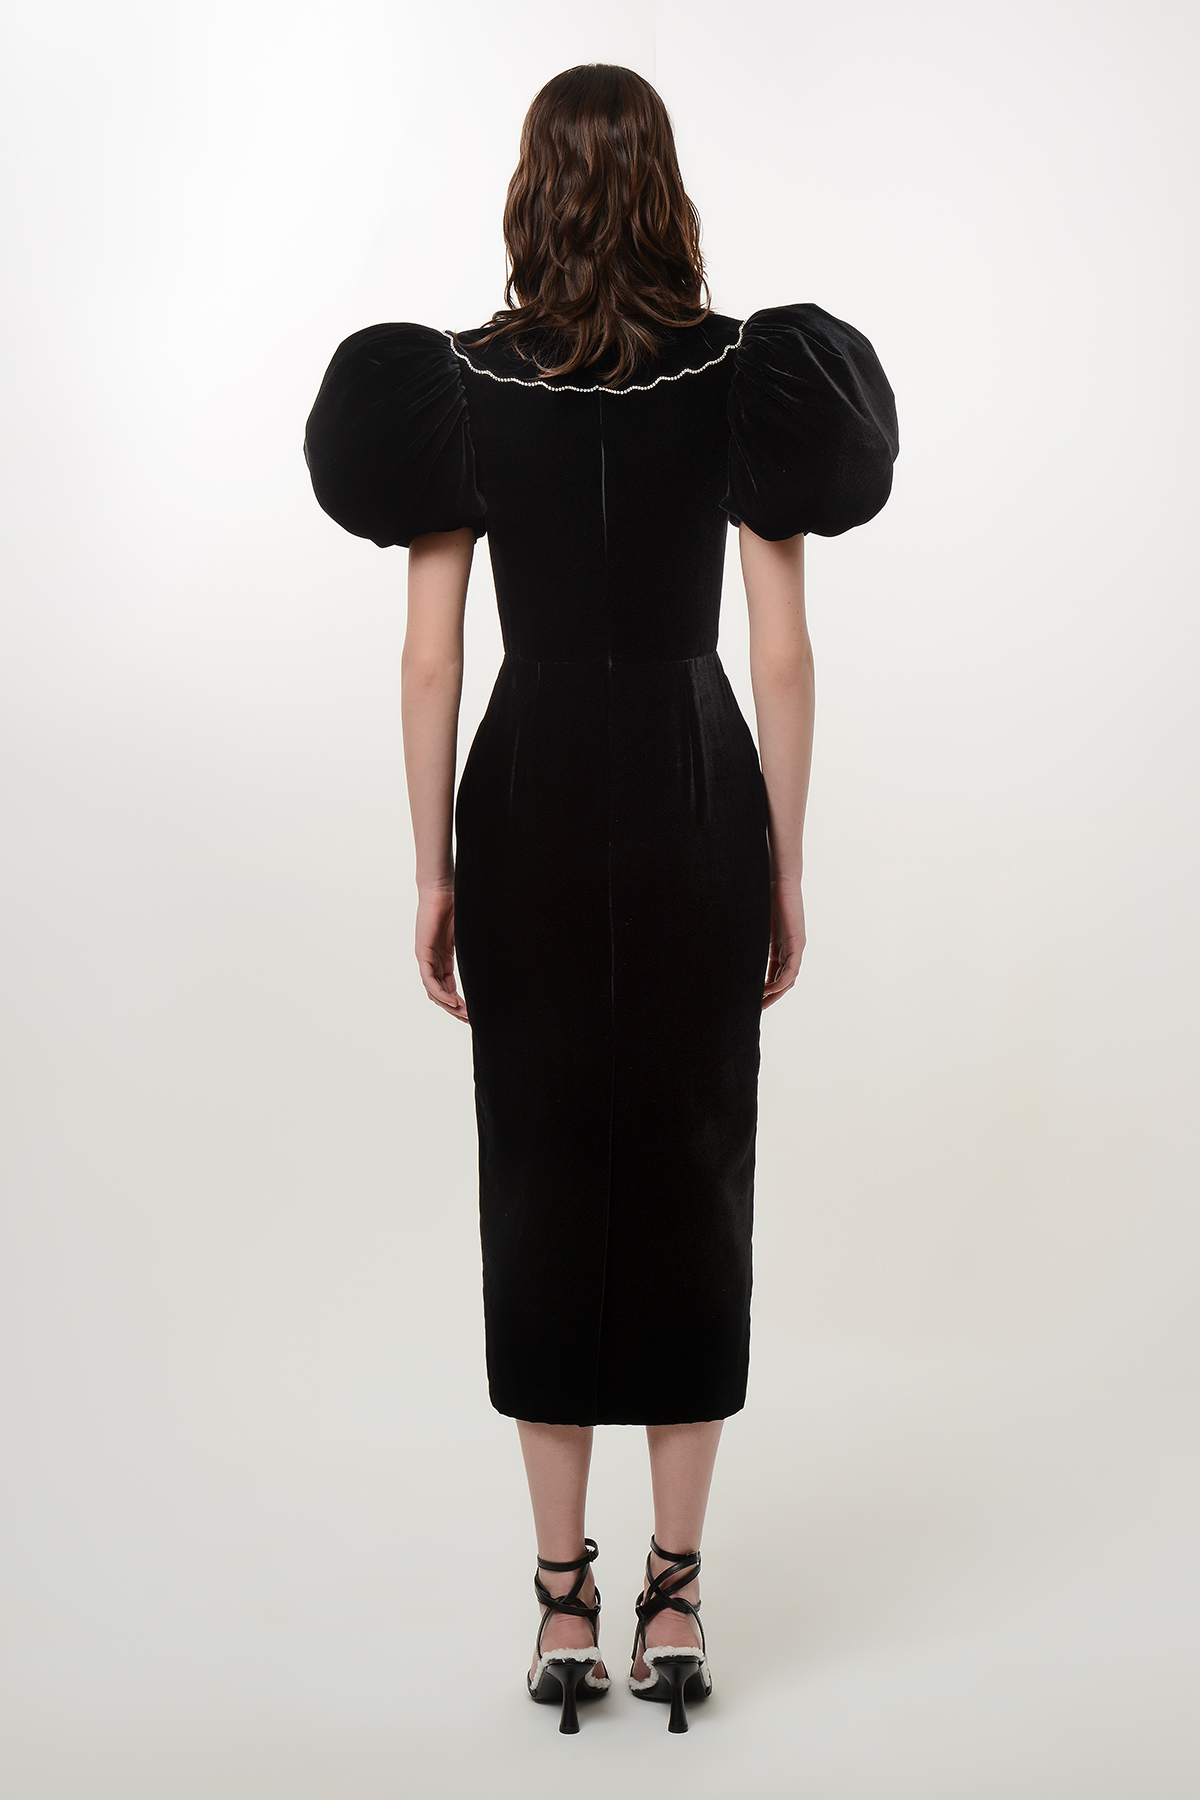 Velvet puff sleeve dress with crystal ribbons 2